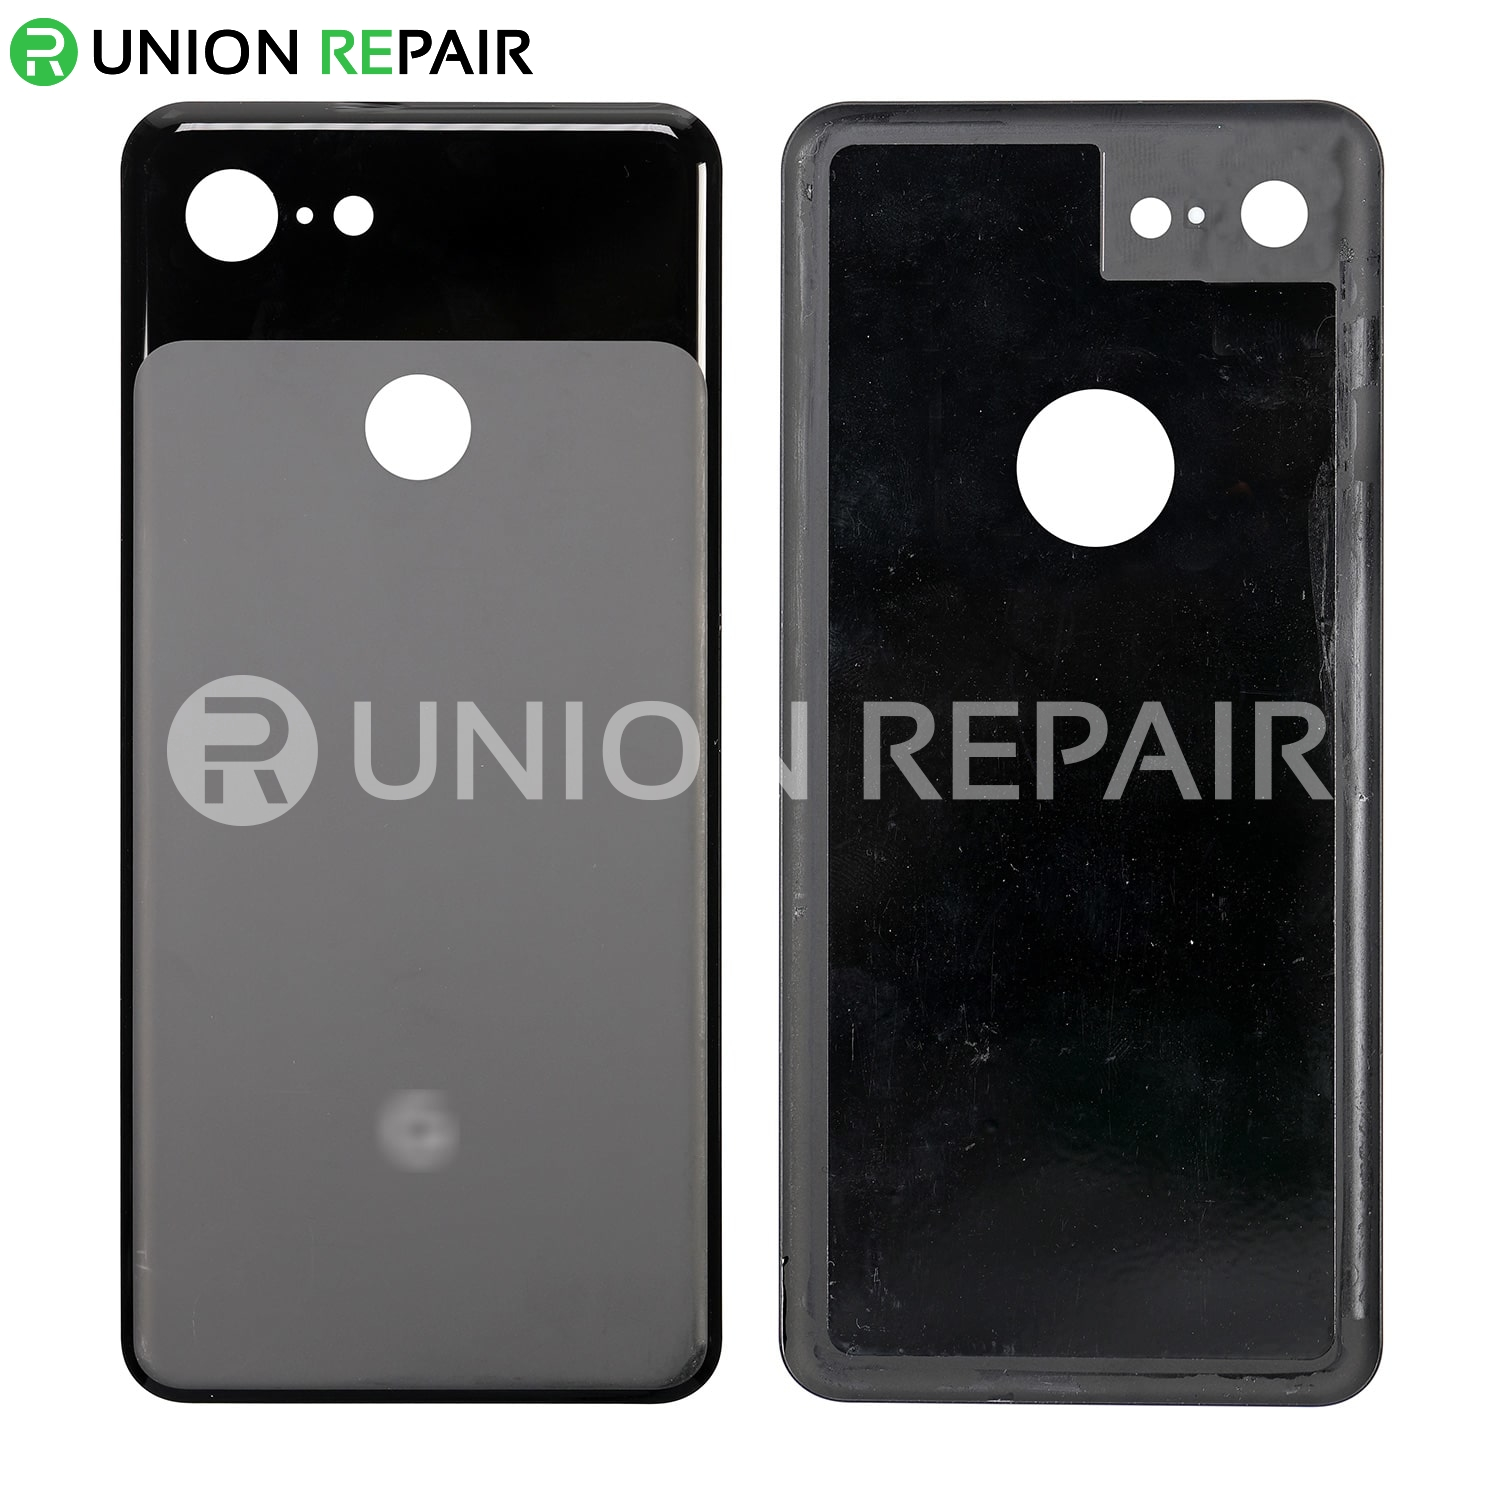 Replacement for Google Pixel 3 Back Cover - Black